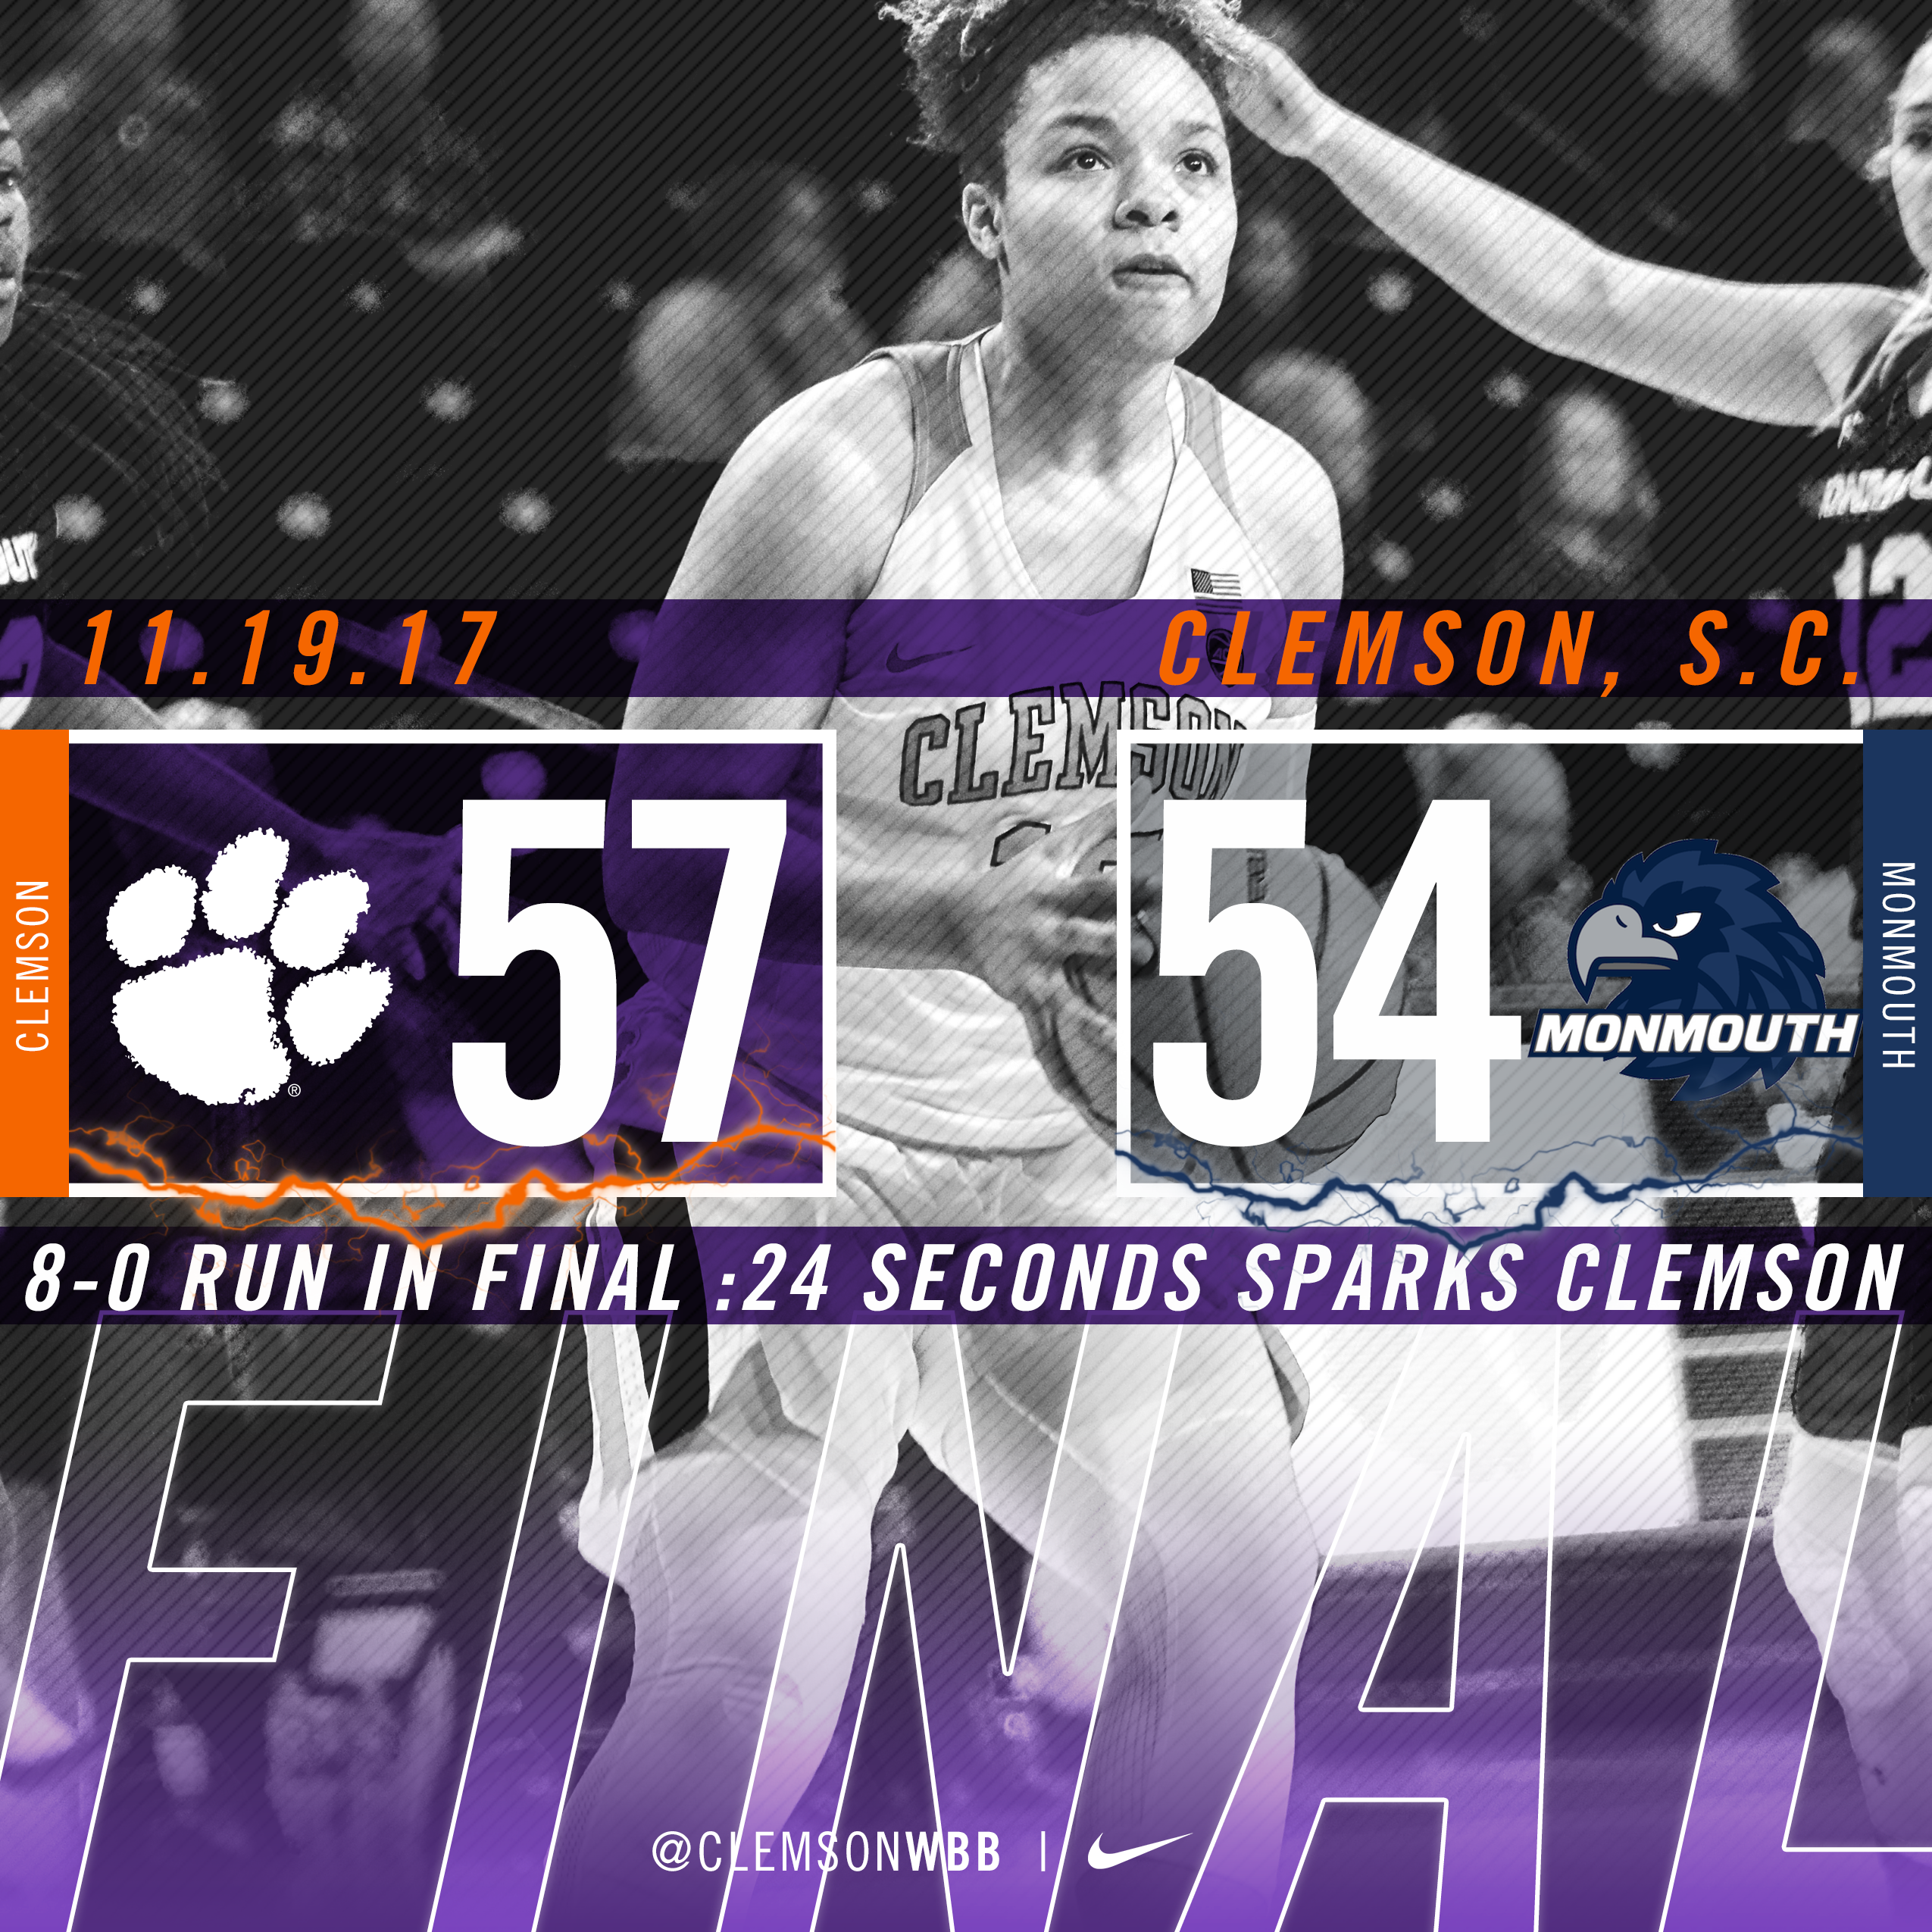 Eight Points in Final 20 Seconds Lift Tigers to 57-54 Win Over Monmouth Sunday